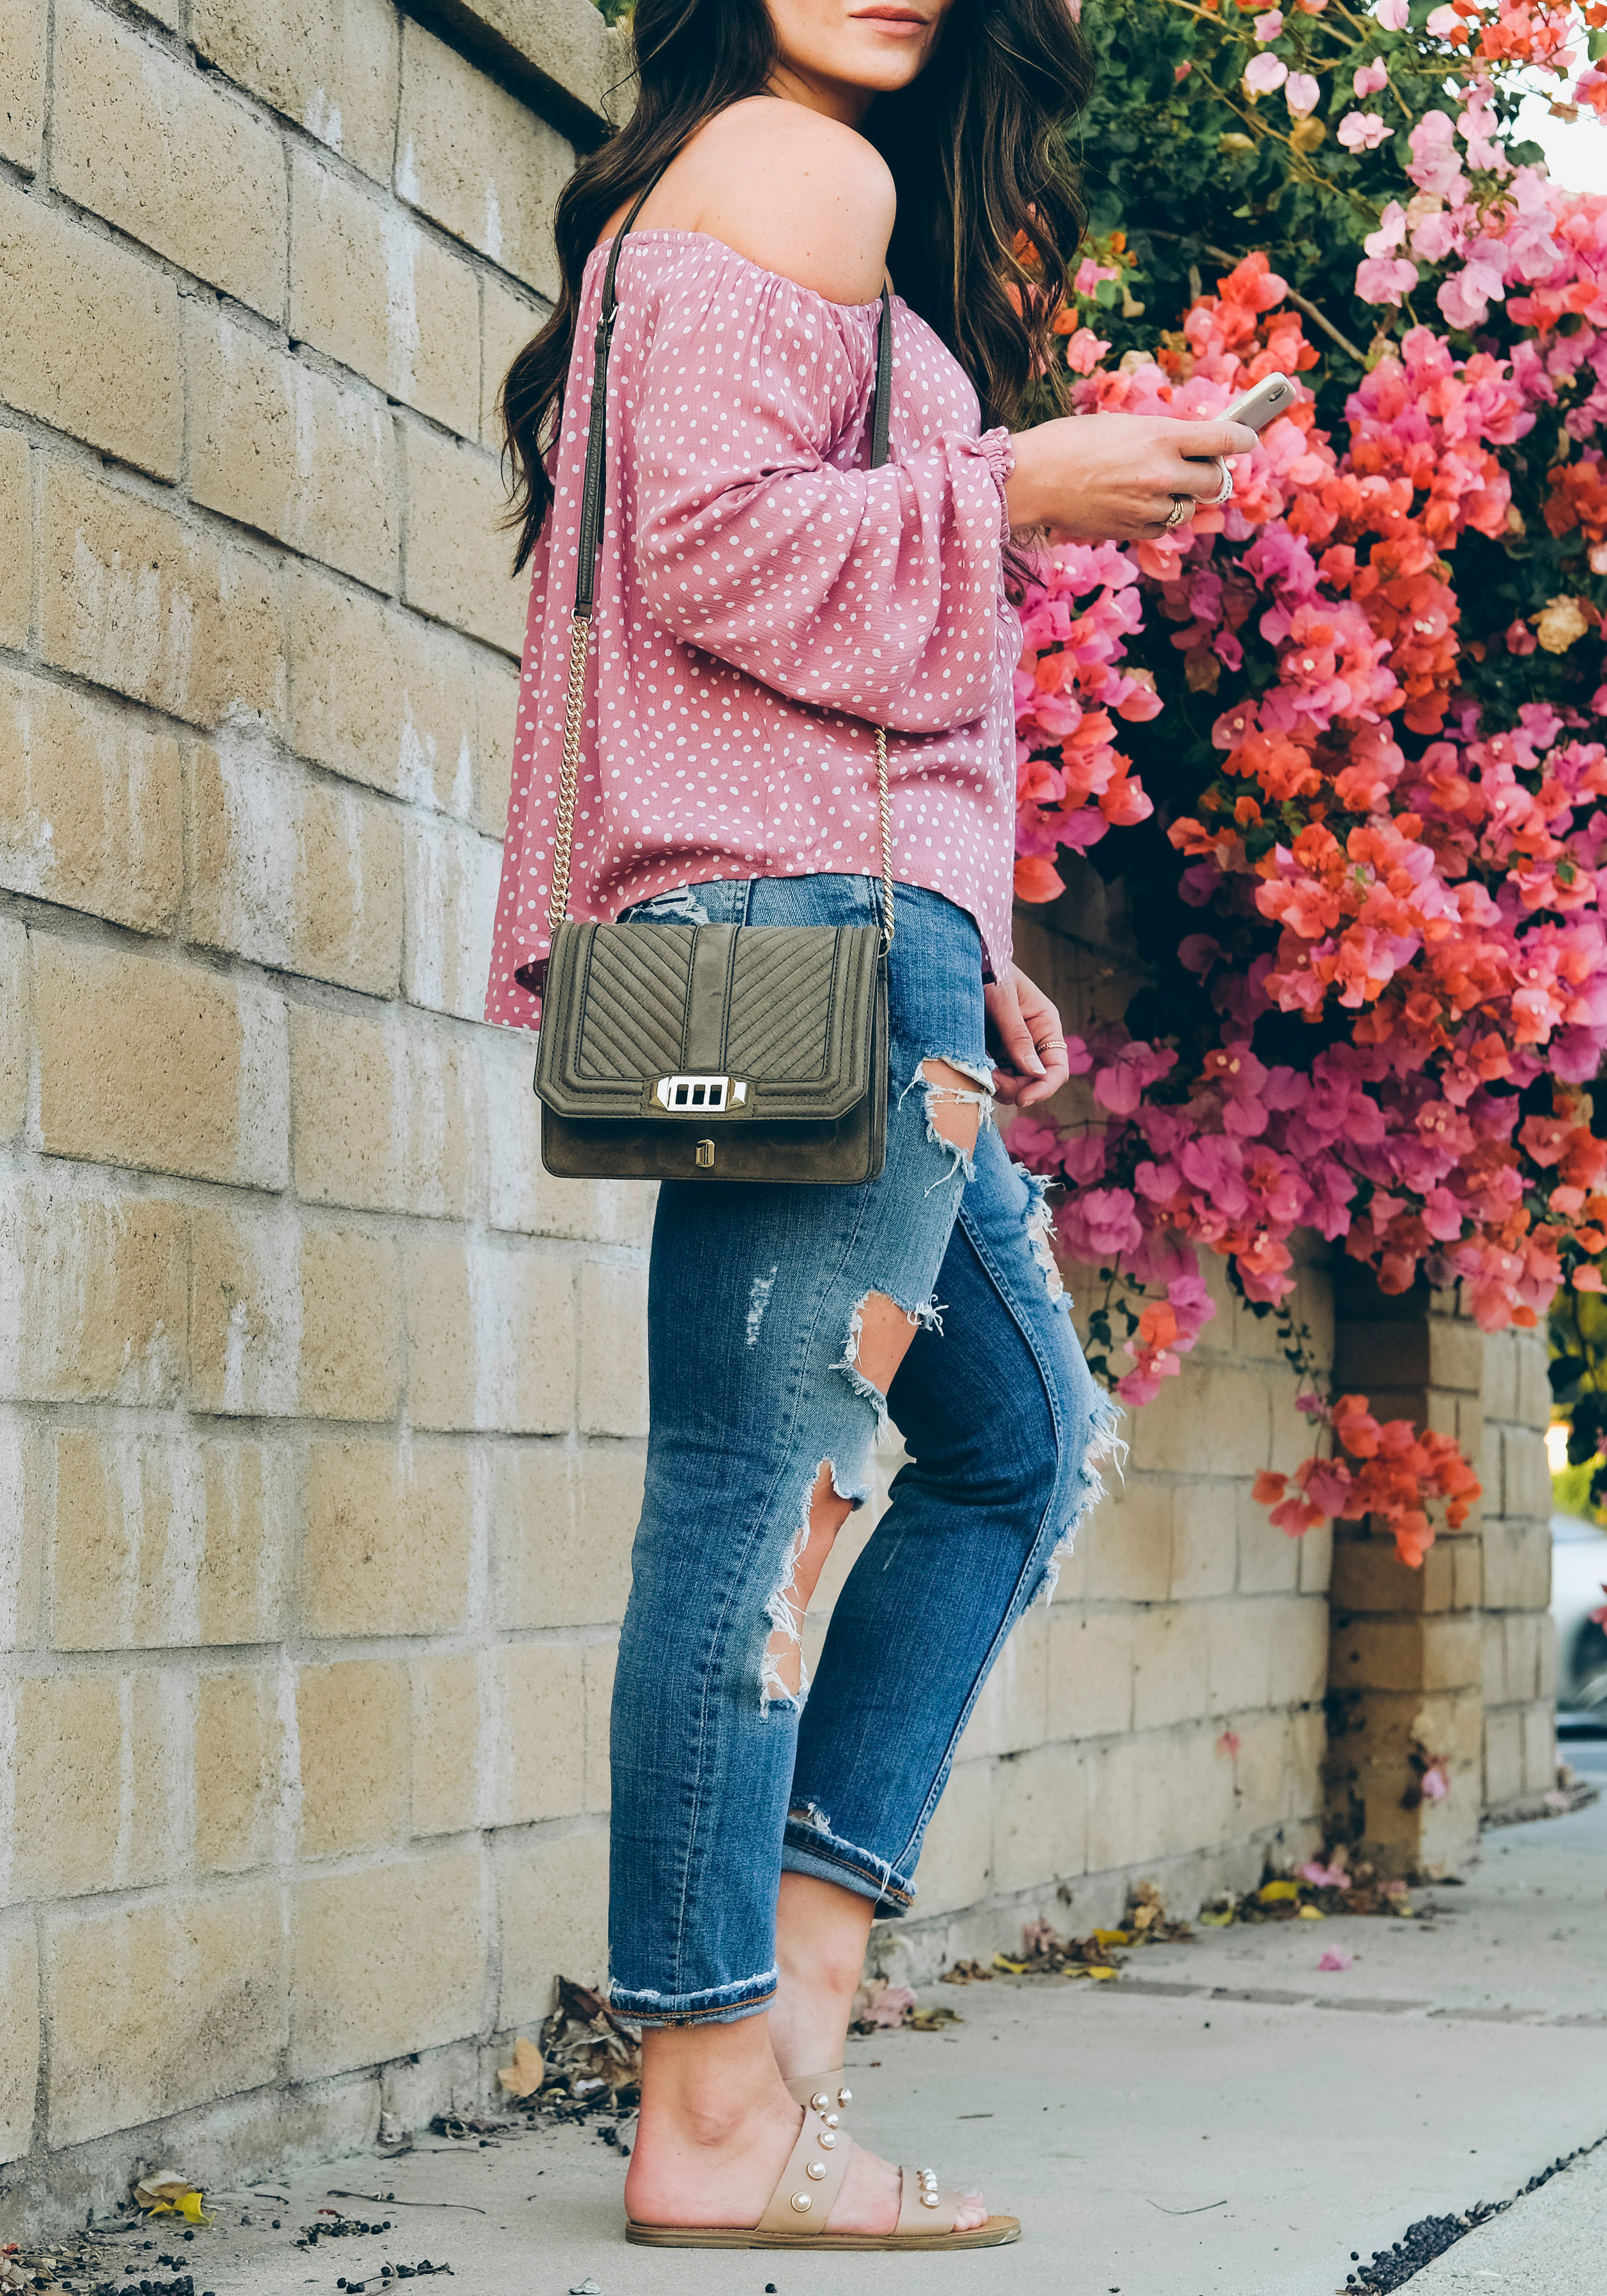 Nordstrom Anniversary Sale 2017, Billabong Mi Amore off the shoulder top, destroyed jeans, Steve Madden Jole sandals, Rebecca Minkoff Nubuck suede Love crossbody handbag.  Pink flowers.